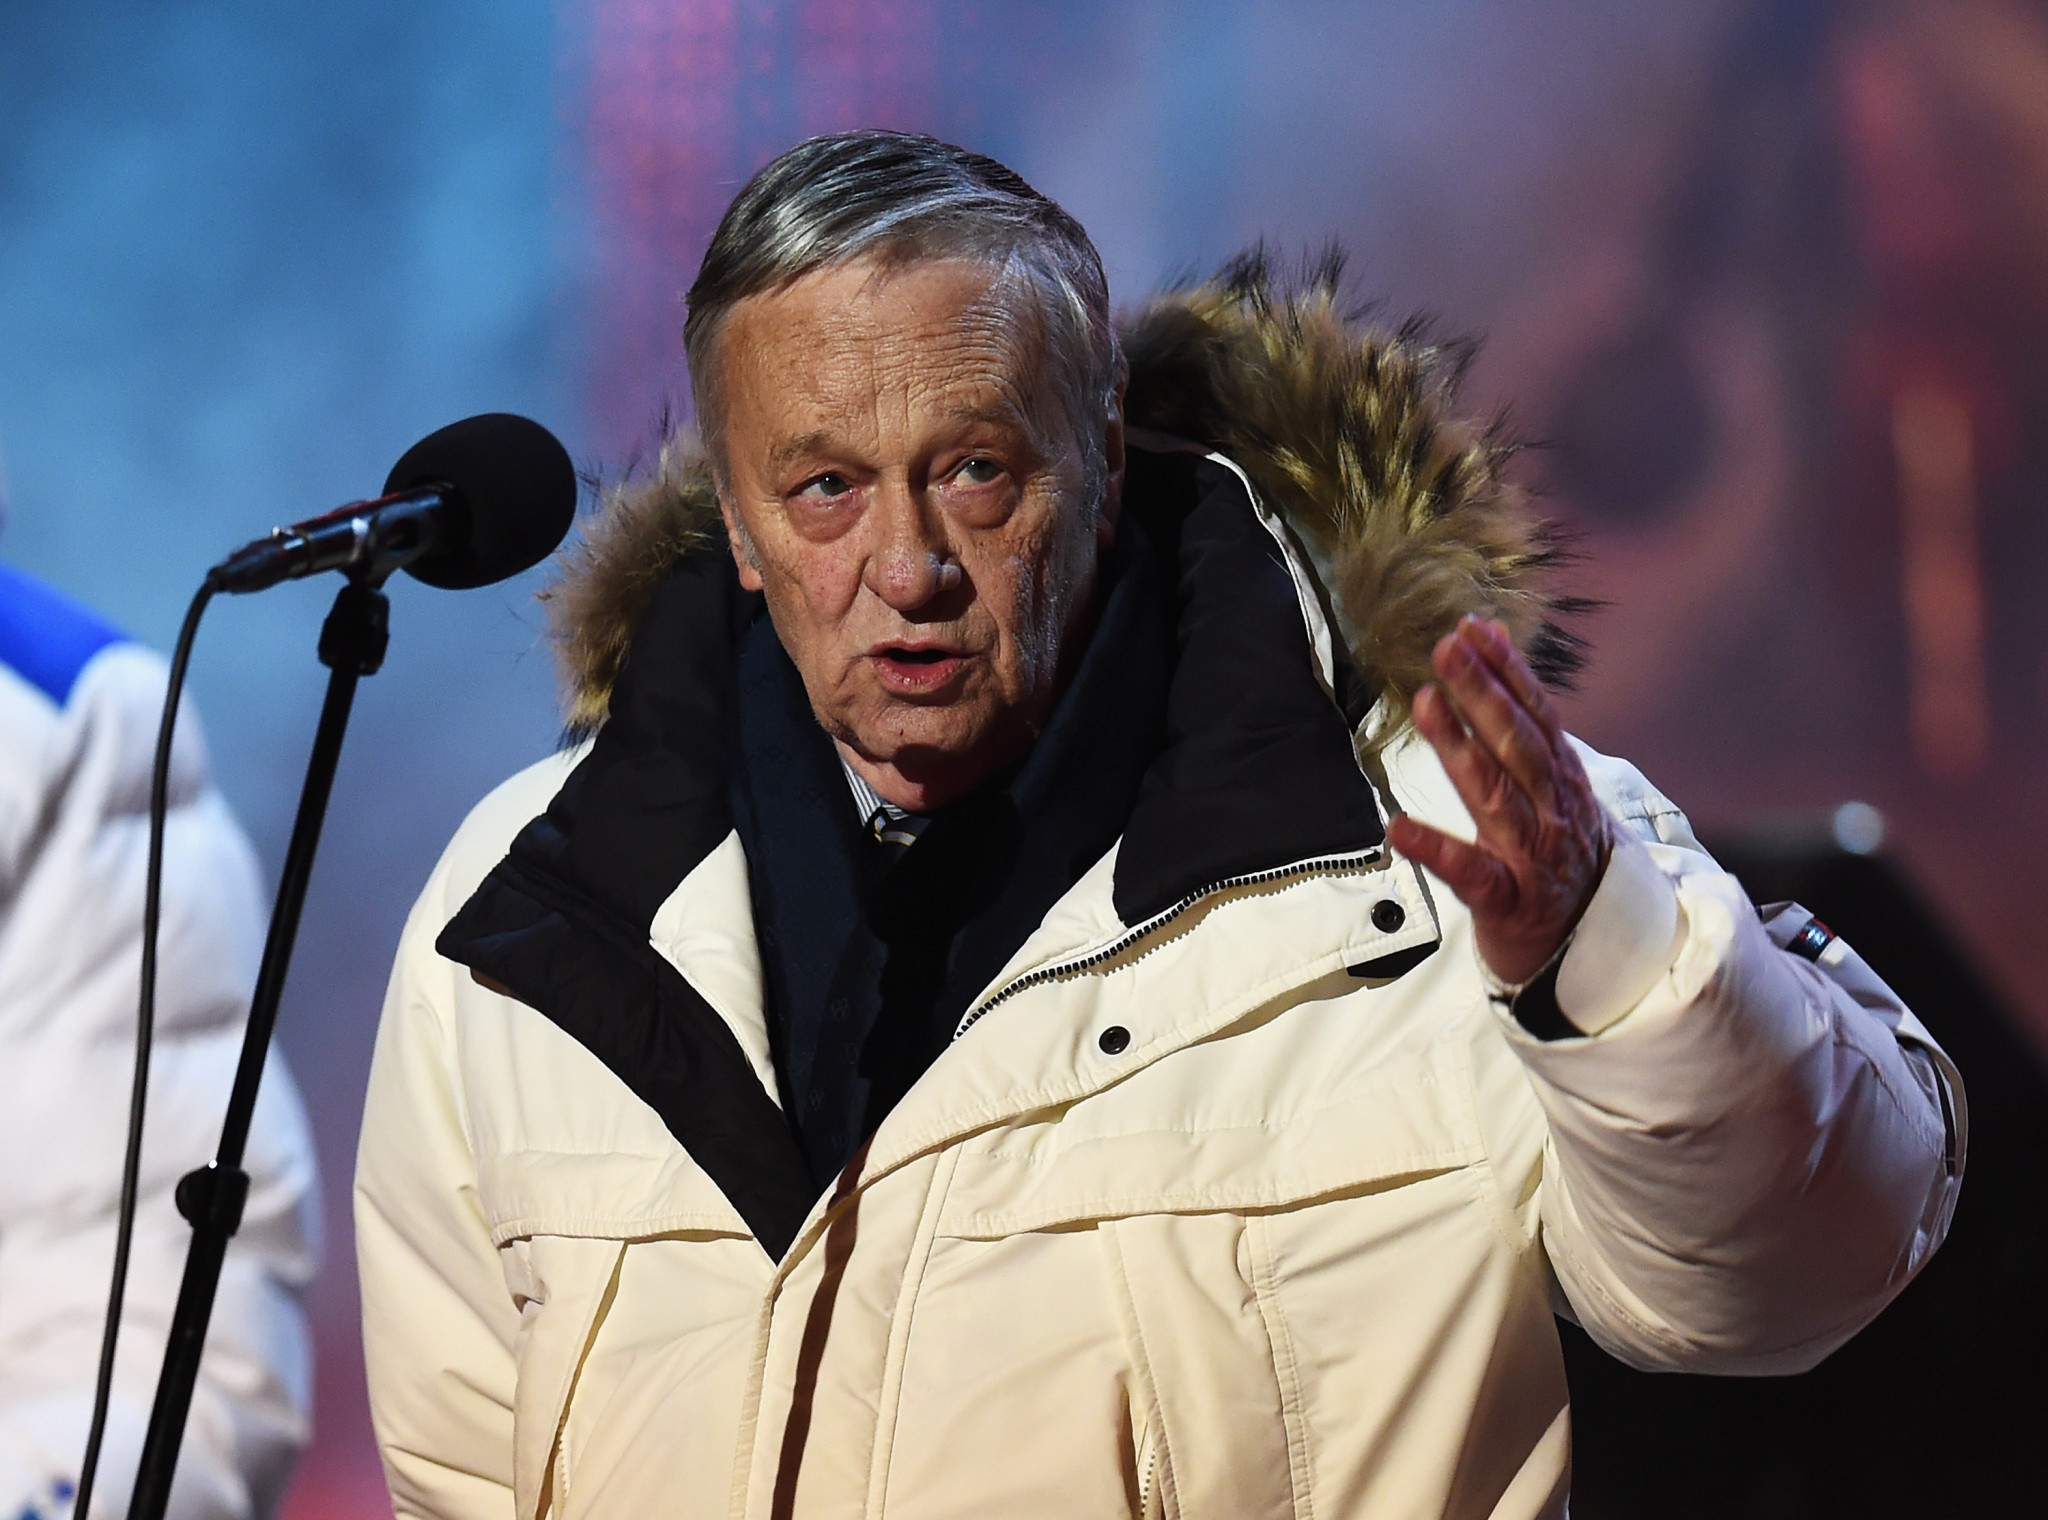 Gian-Franco Kasper is set to step down as FIS President after 22 years in charge ©Getty Images